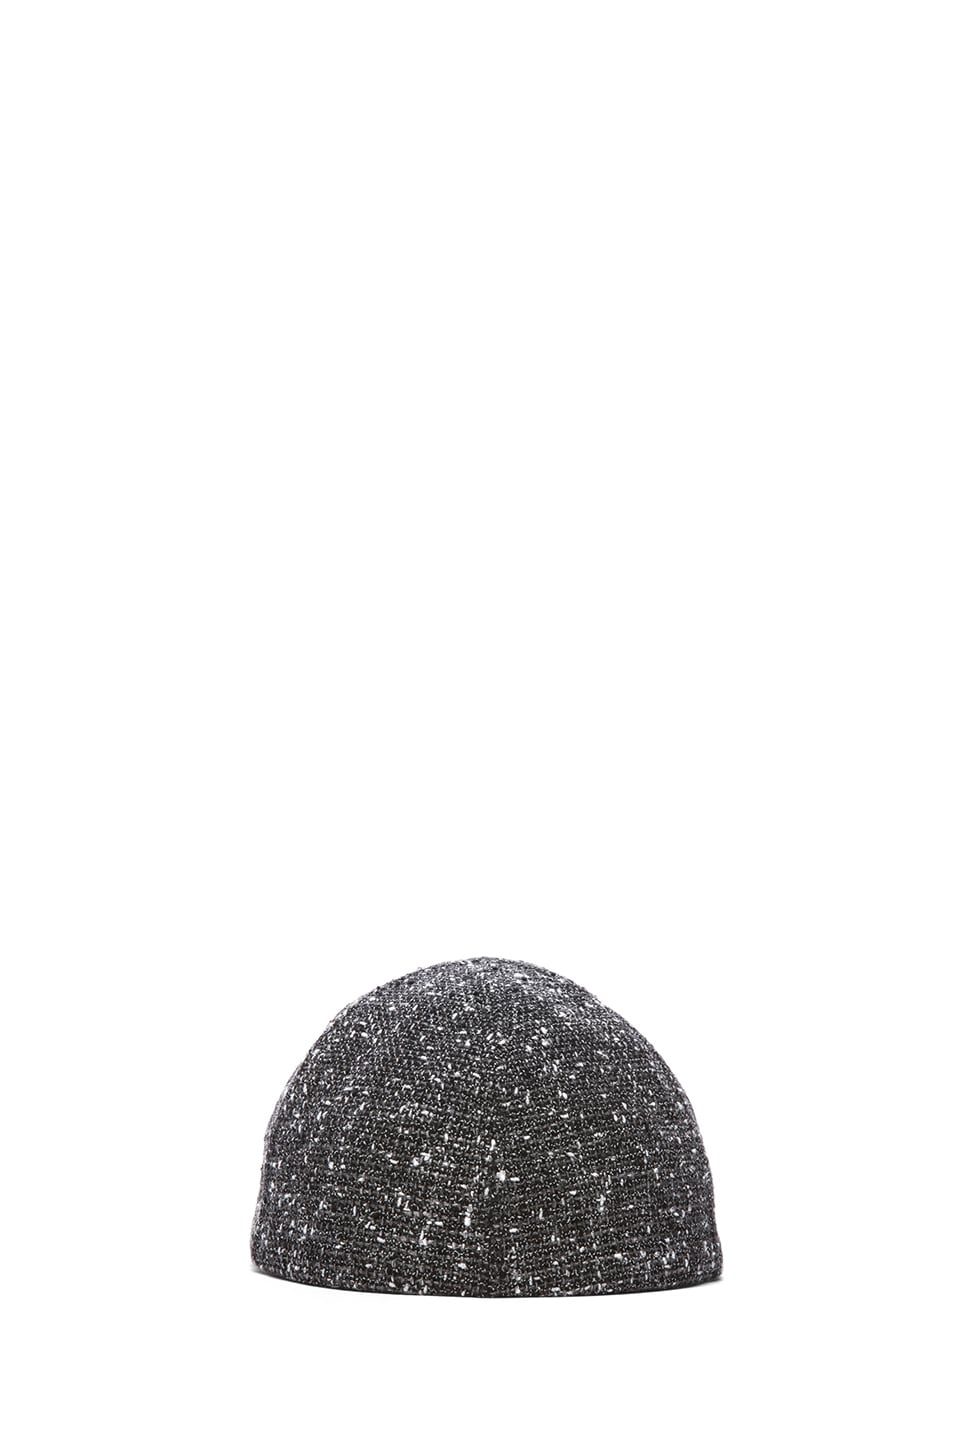 Image 4 of Eugenia Kim Darien Baseball Cap in Charcoal Tweed